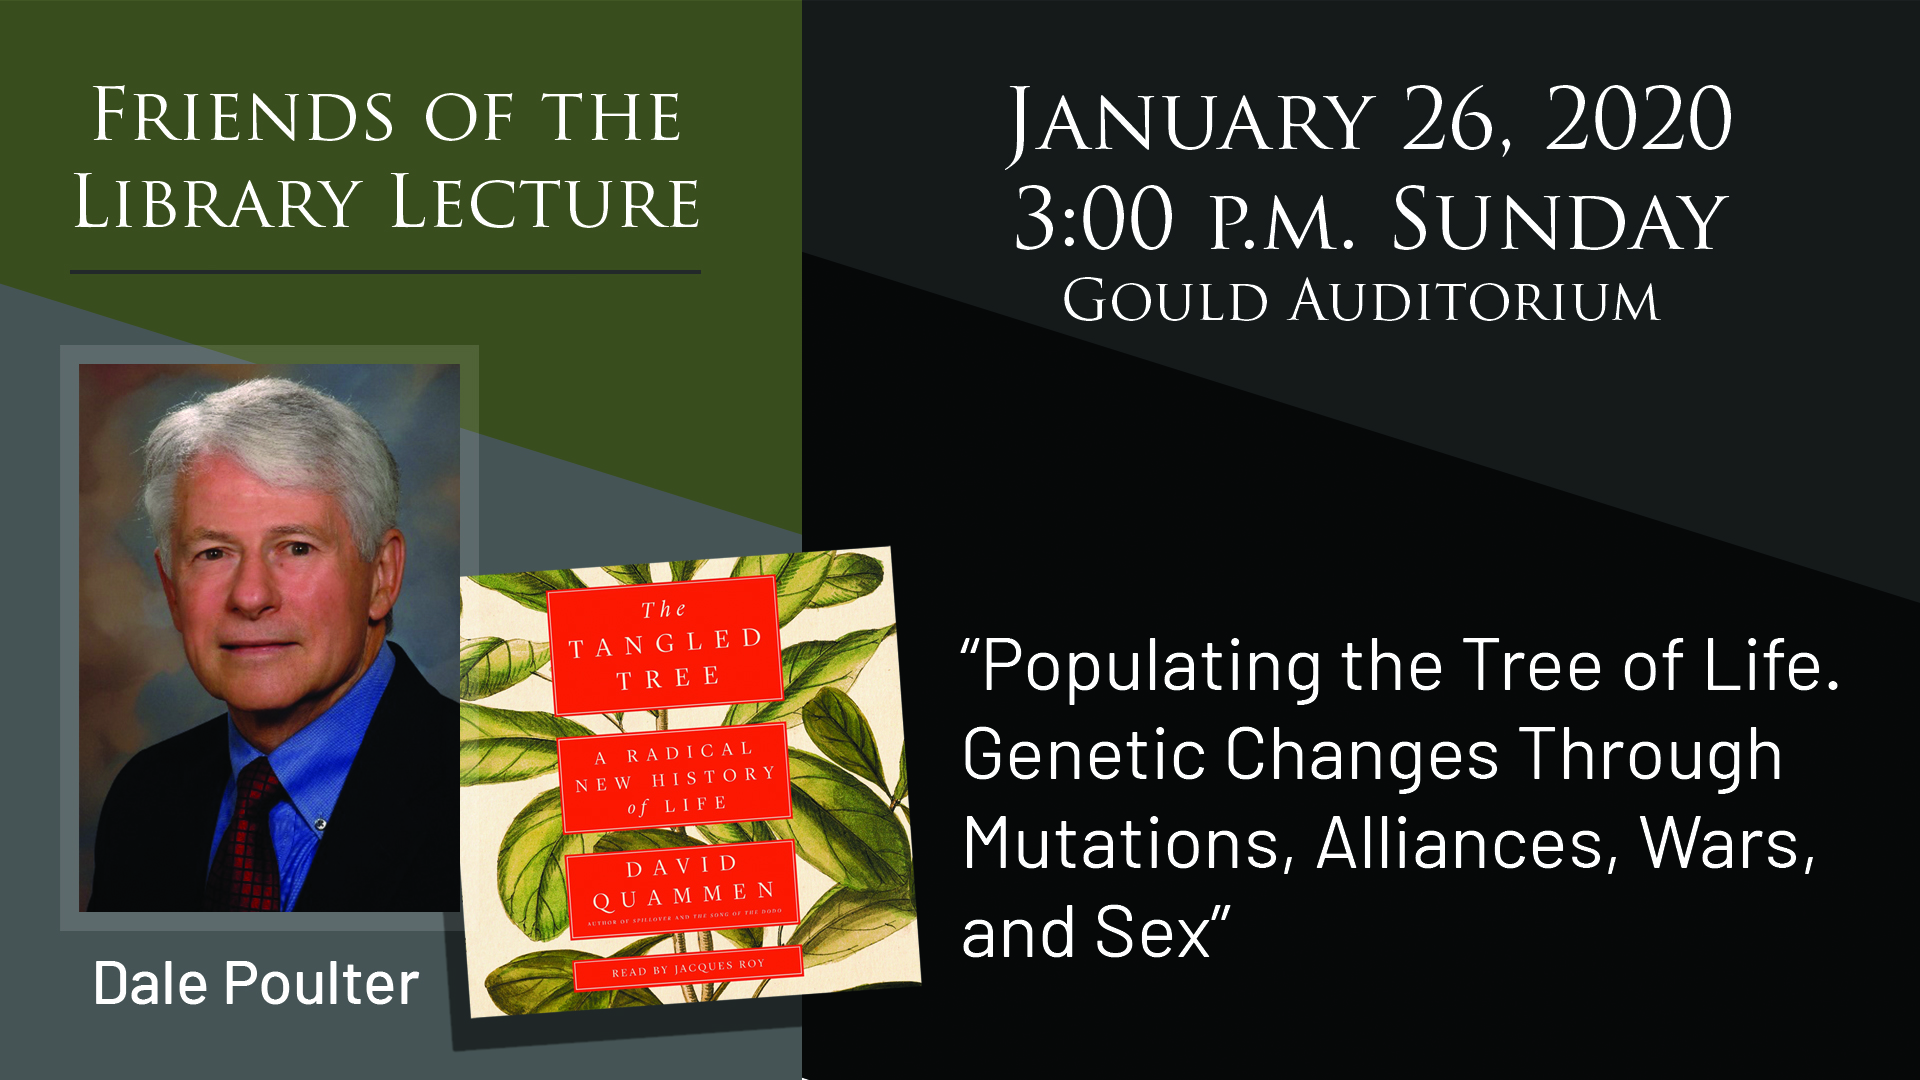 friends of the library lecture january 26th at 3 pm in the gould auditorium featured speaker is dale poulter